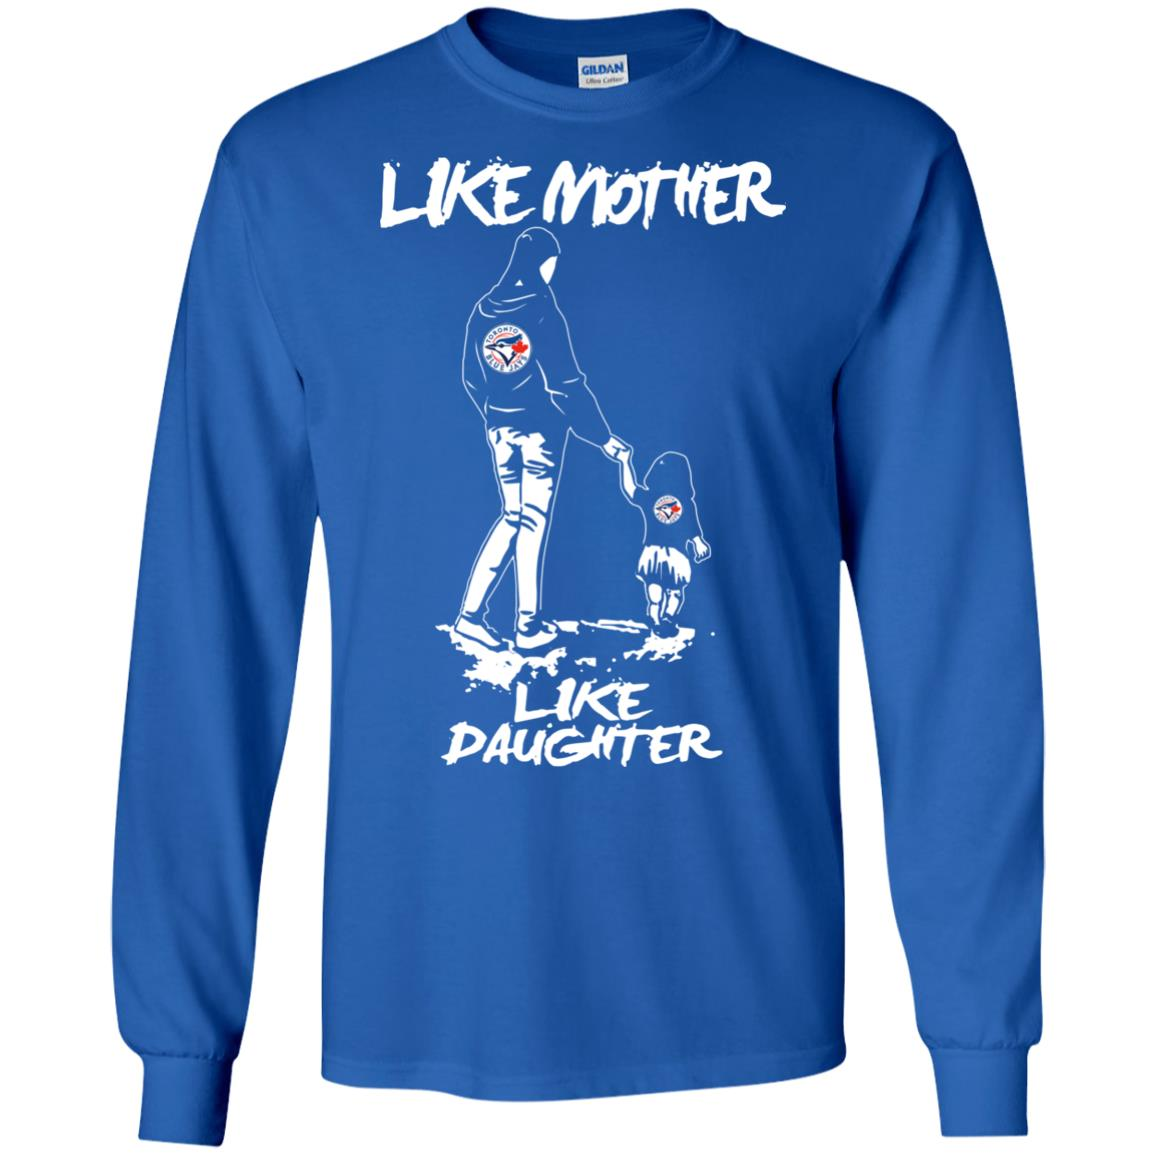 Like Mother Like Daughter Toronto Blue Jays T Shirts